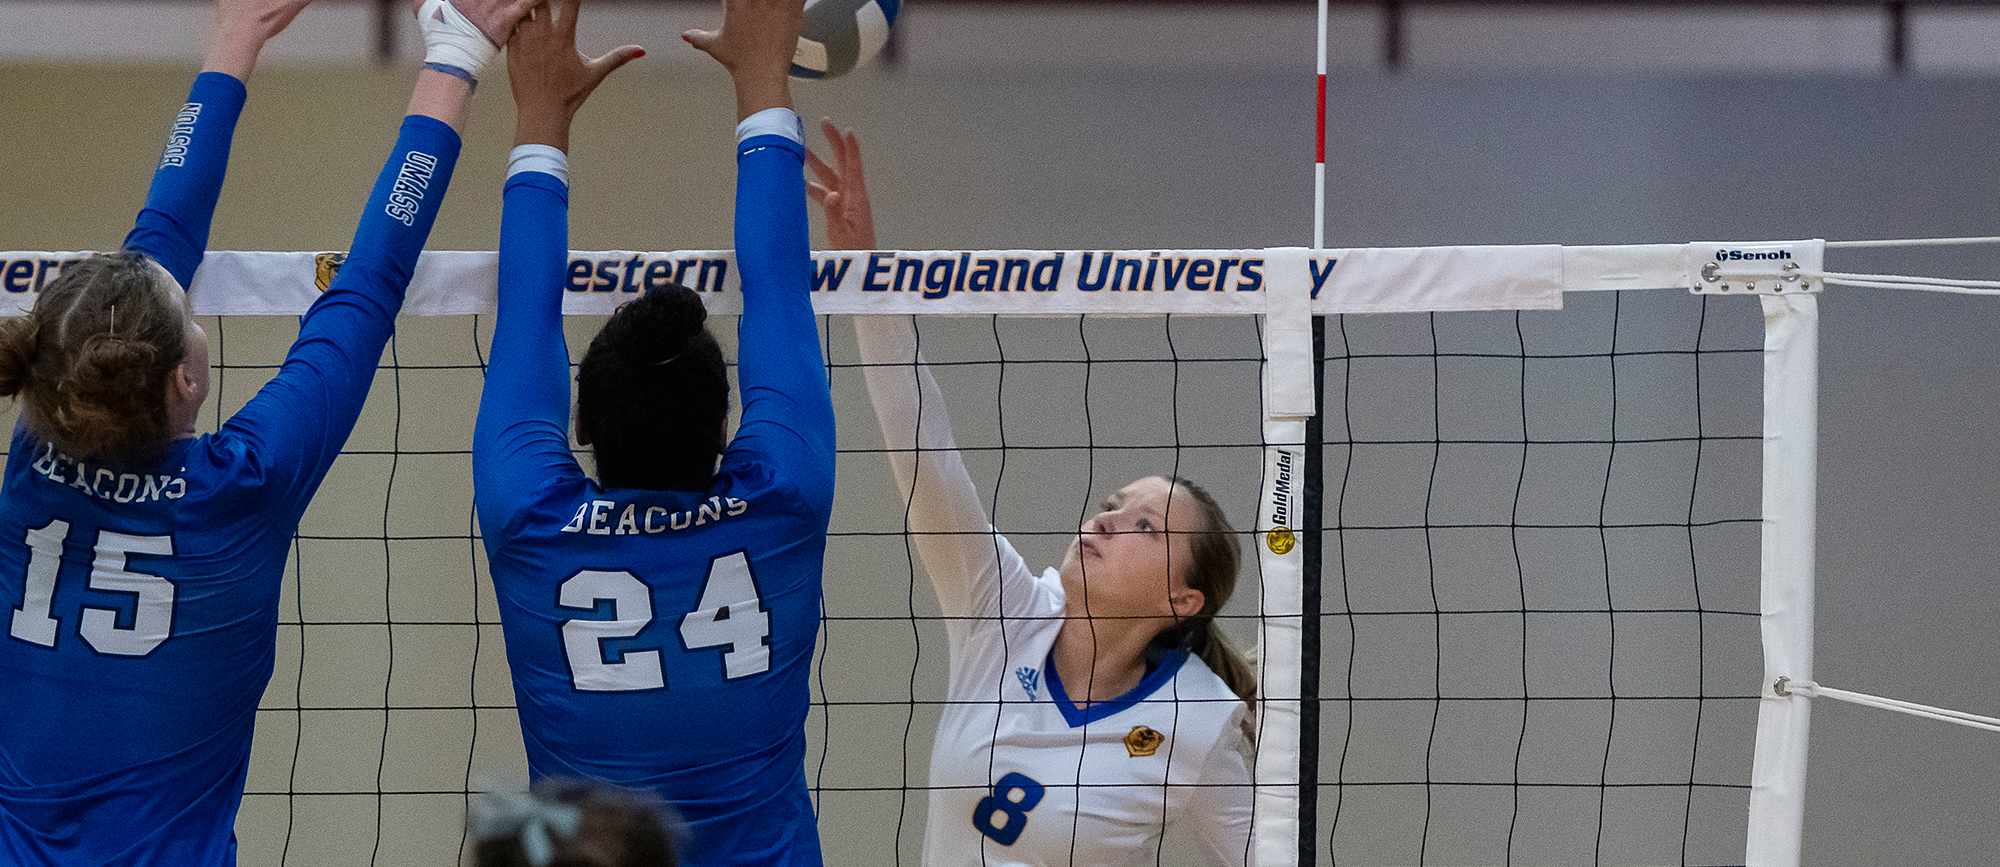 Ashley Matthews recorded a team-high 12 kills in Western New England's 3-1 loss to Wentworth on Wednesday. (Photo by Ben Barnhart)